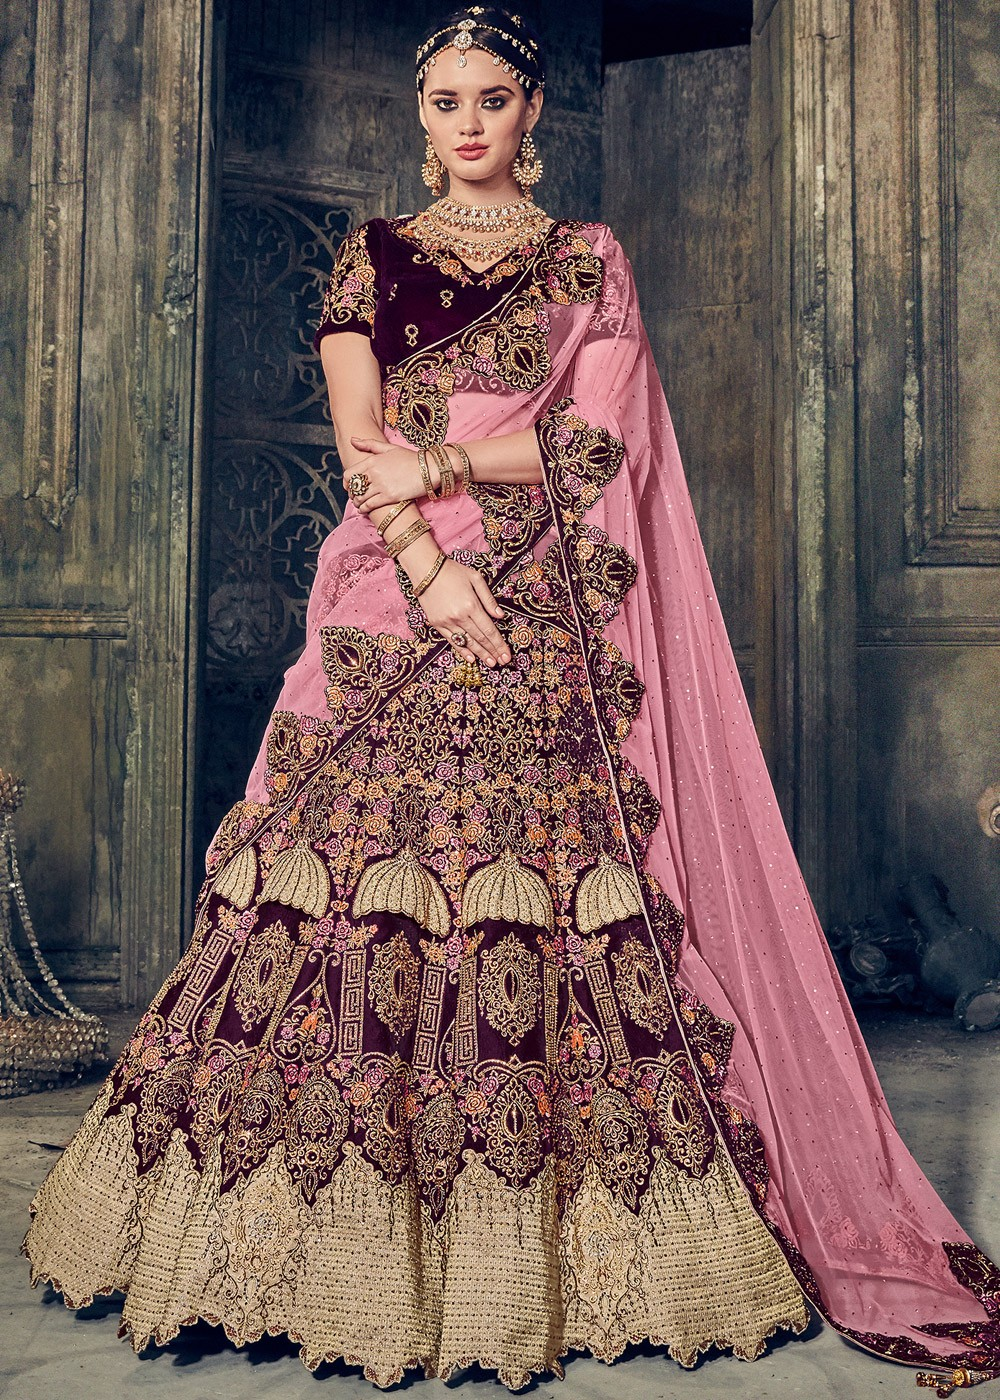 Dark Purple Velvet Bridal Lehenga Choli With Dupatta Lehenga 1614lg12